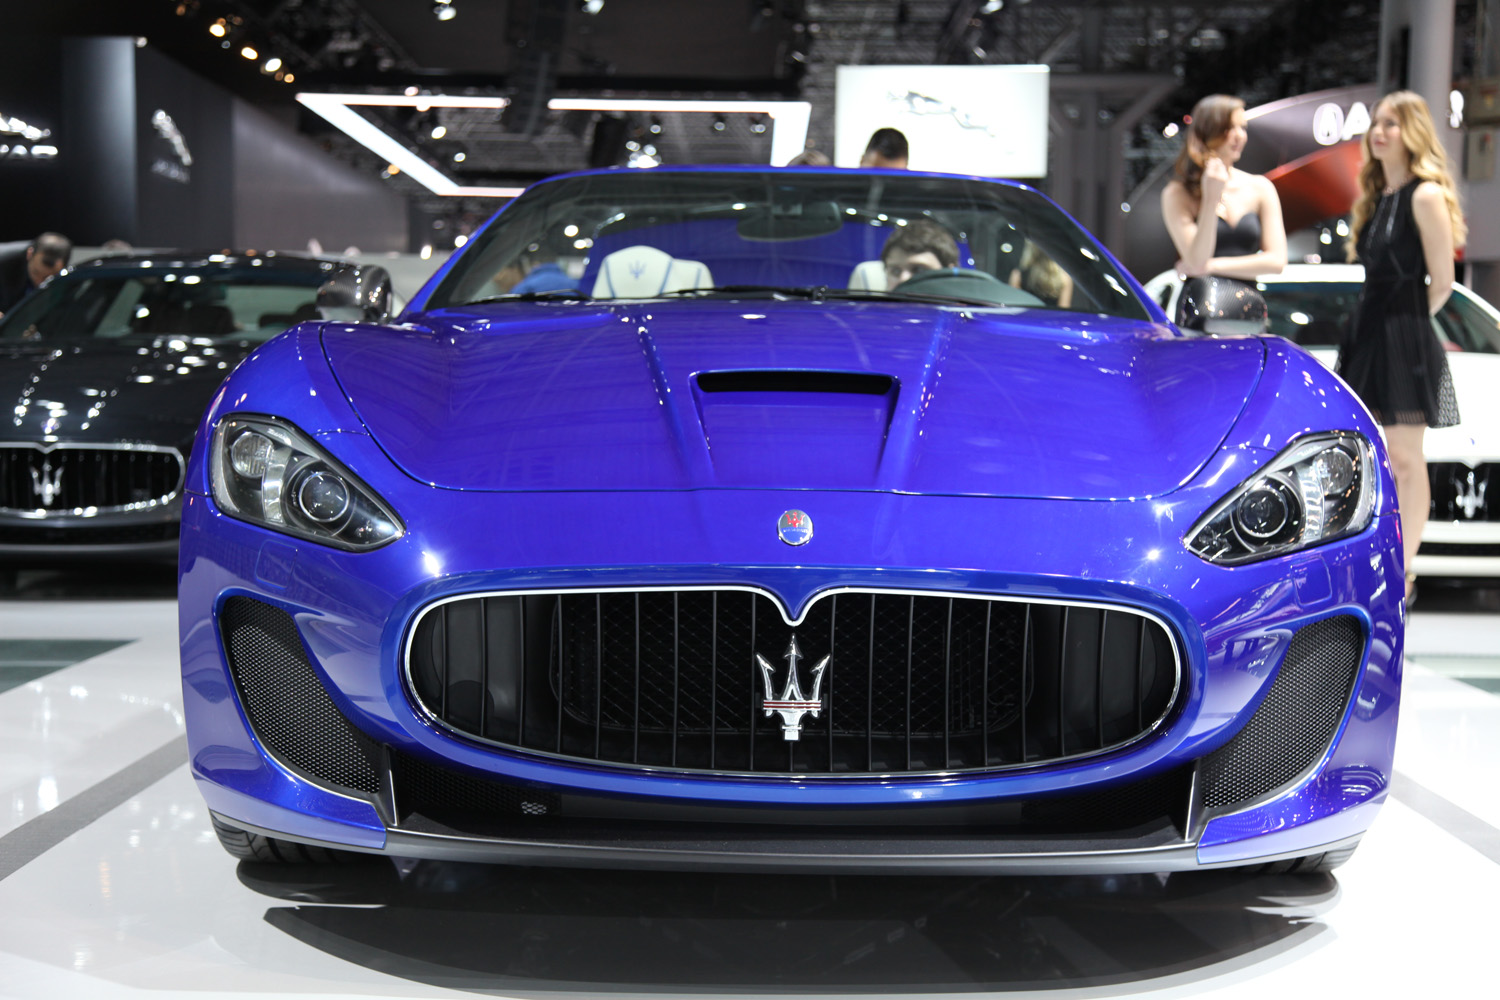 new york 2014 maserati granturismo mc centennial edition. Black Bedroom Furniture Sets. Home Design Ideas